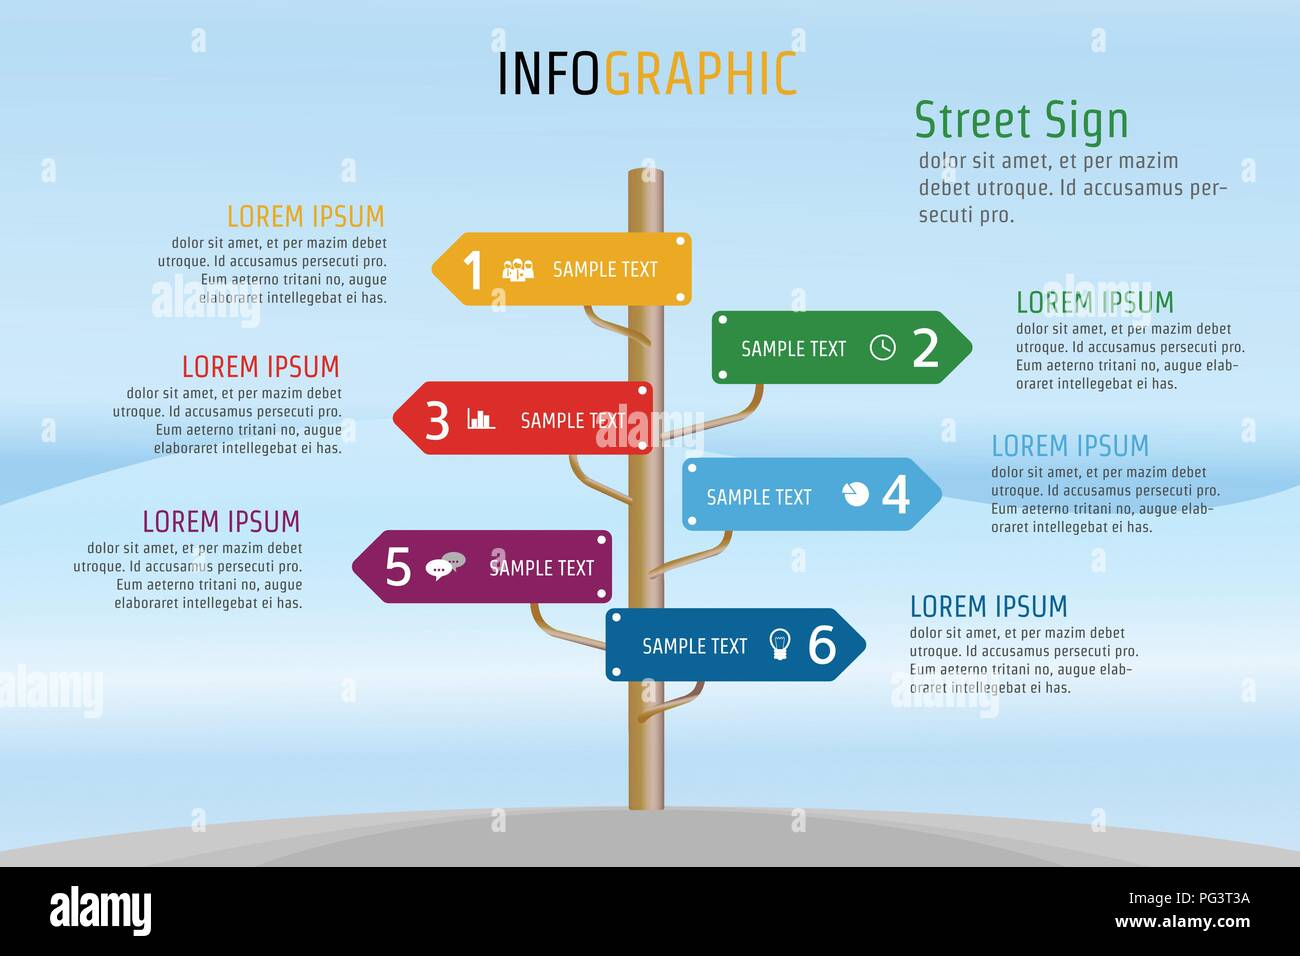 vector illustration infographic template street sign layout design